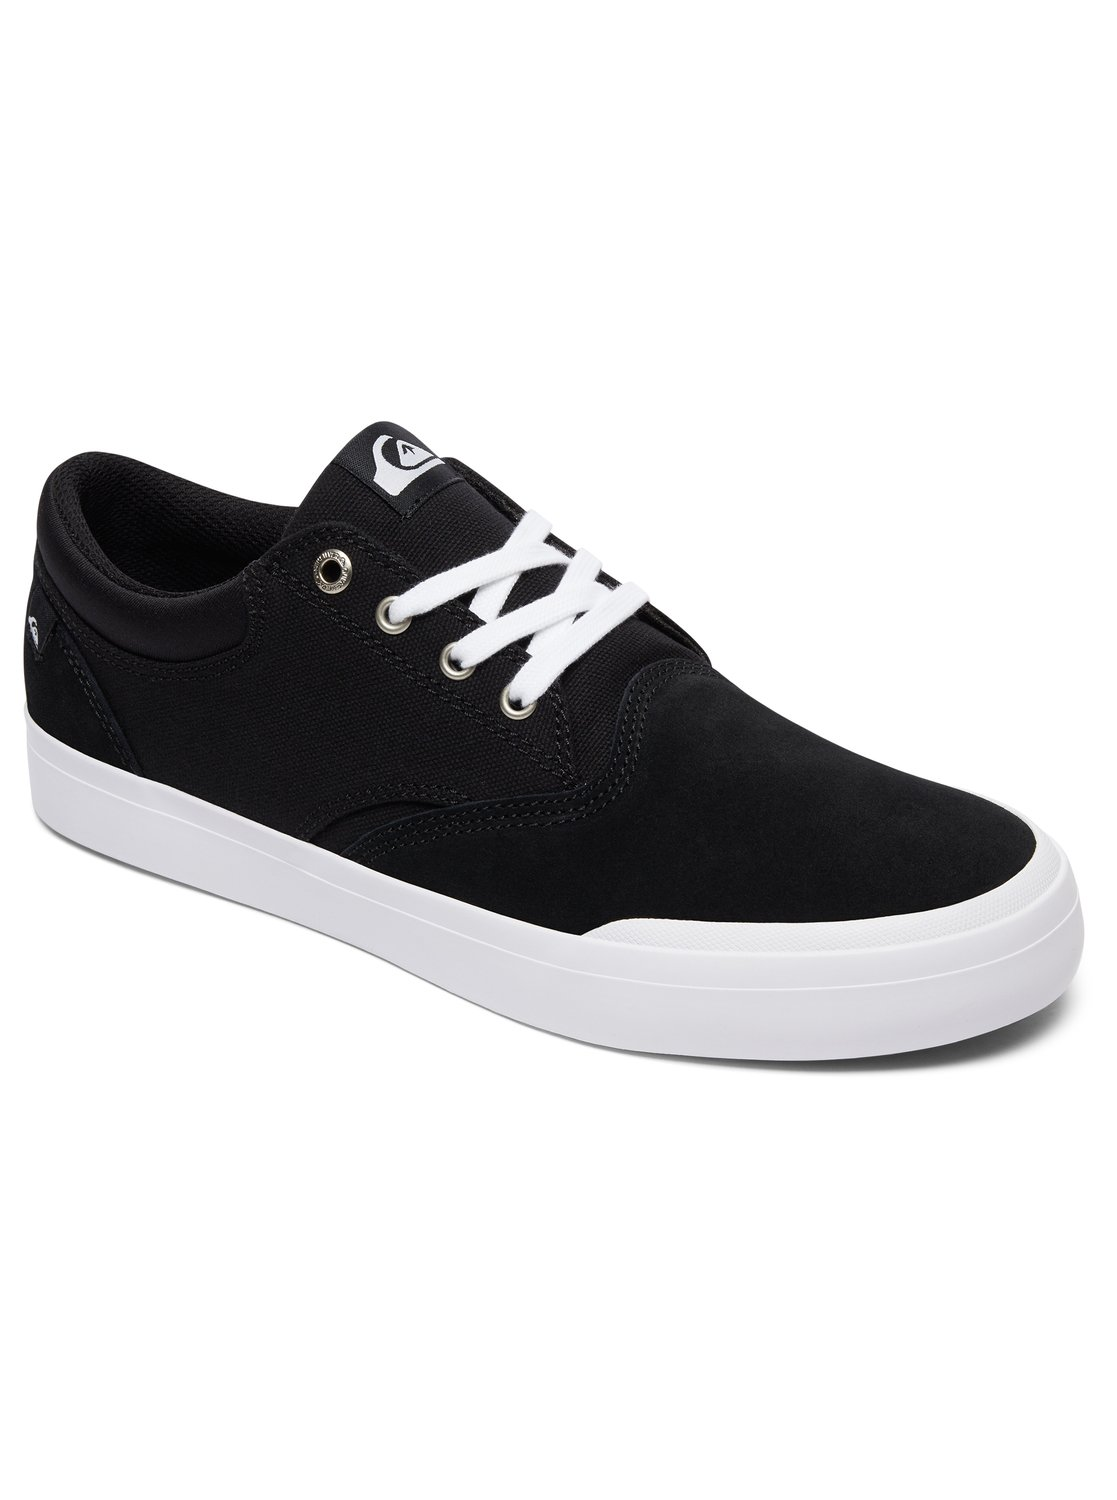 VERANT - Sneaker high - black/black/white